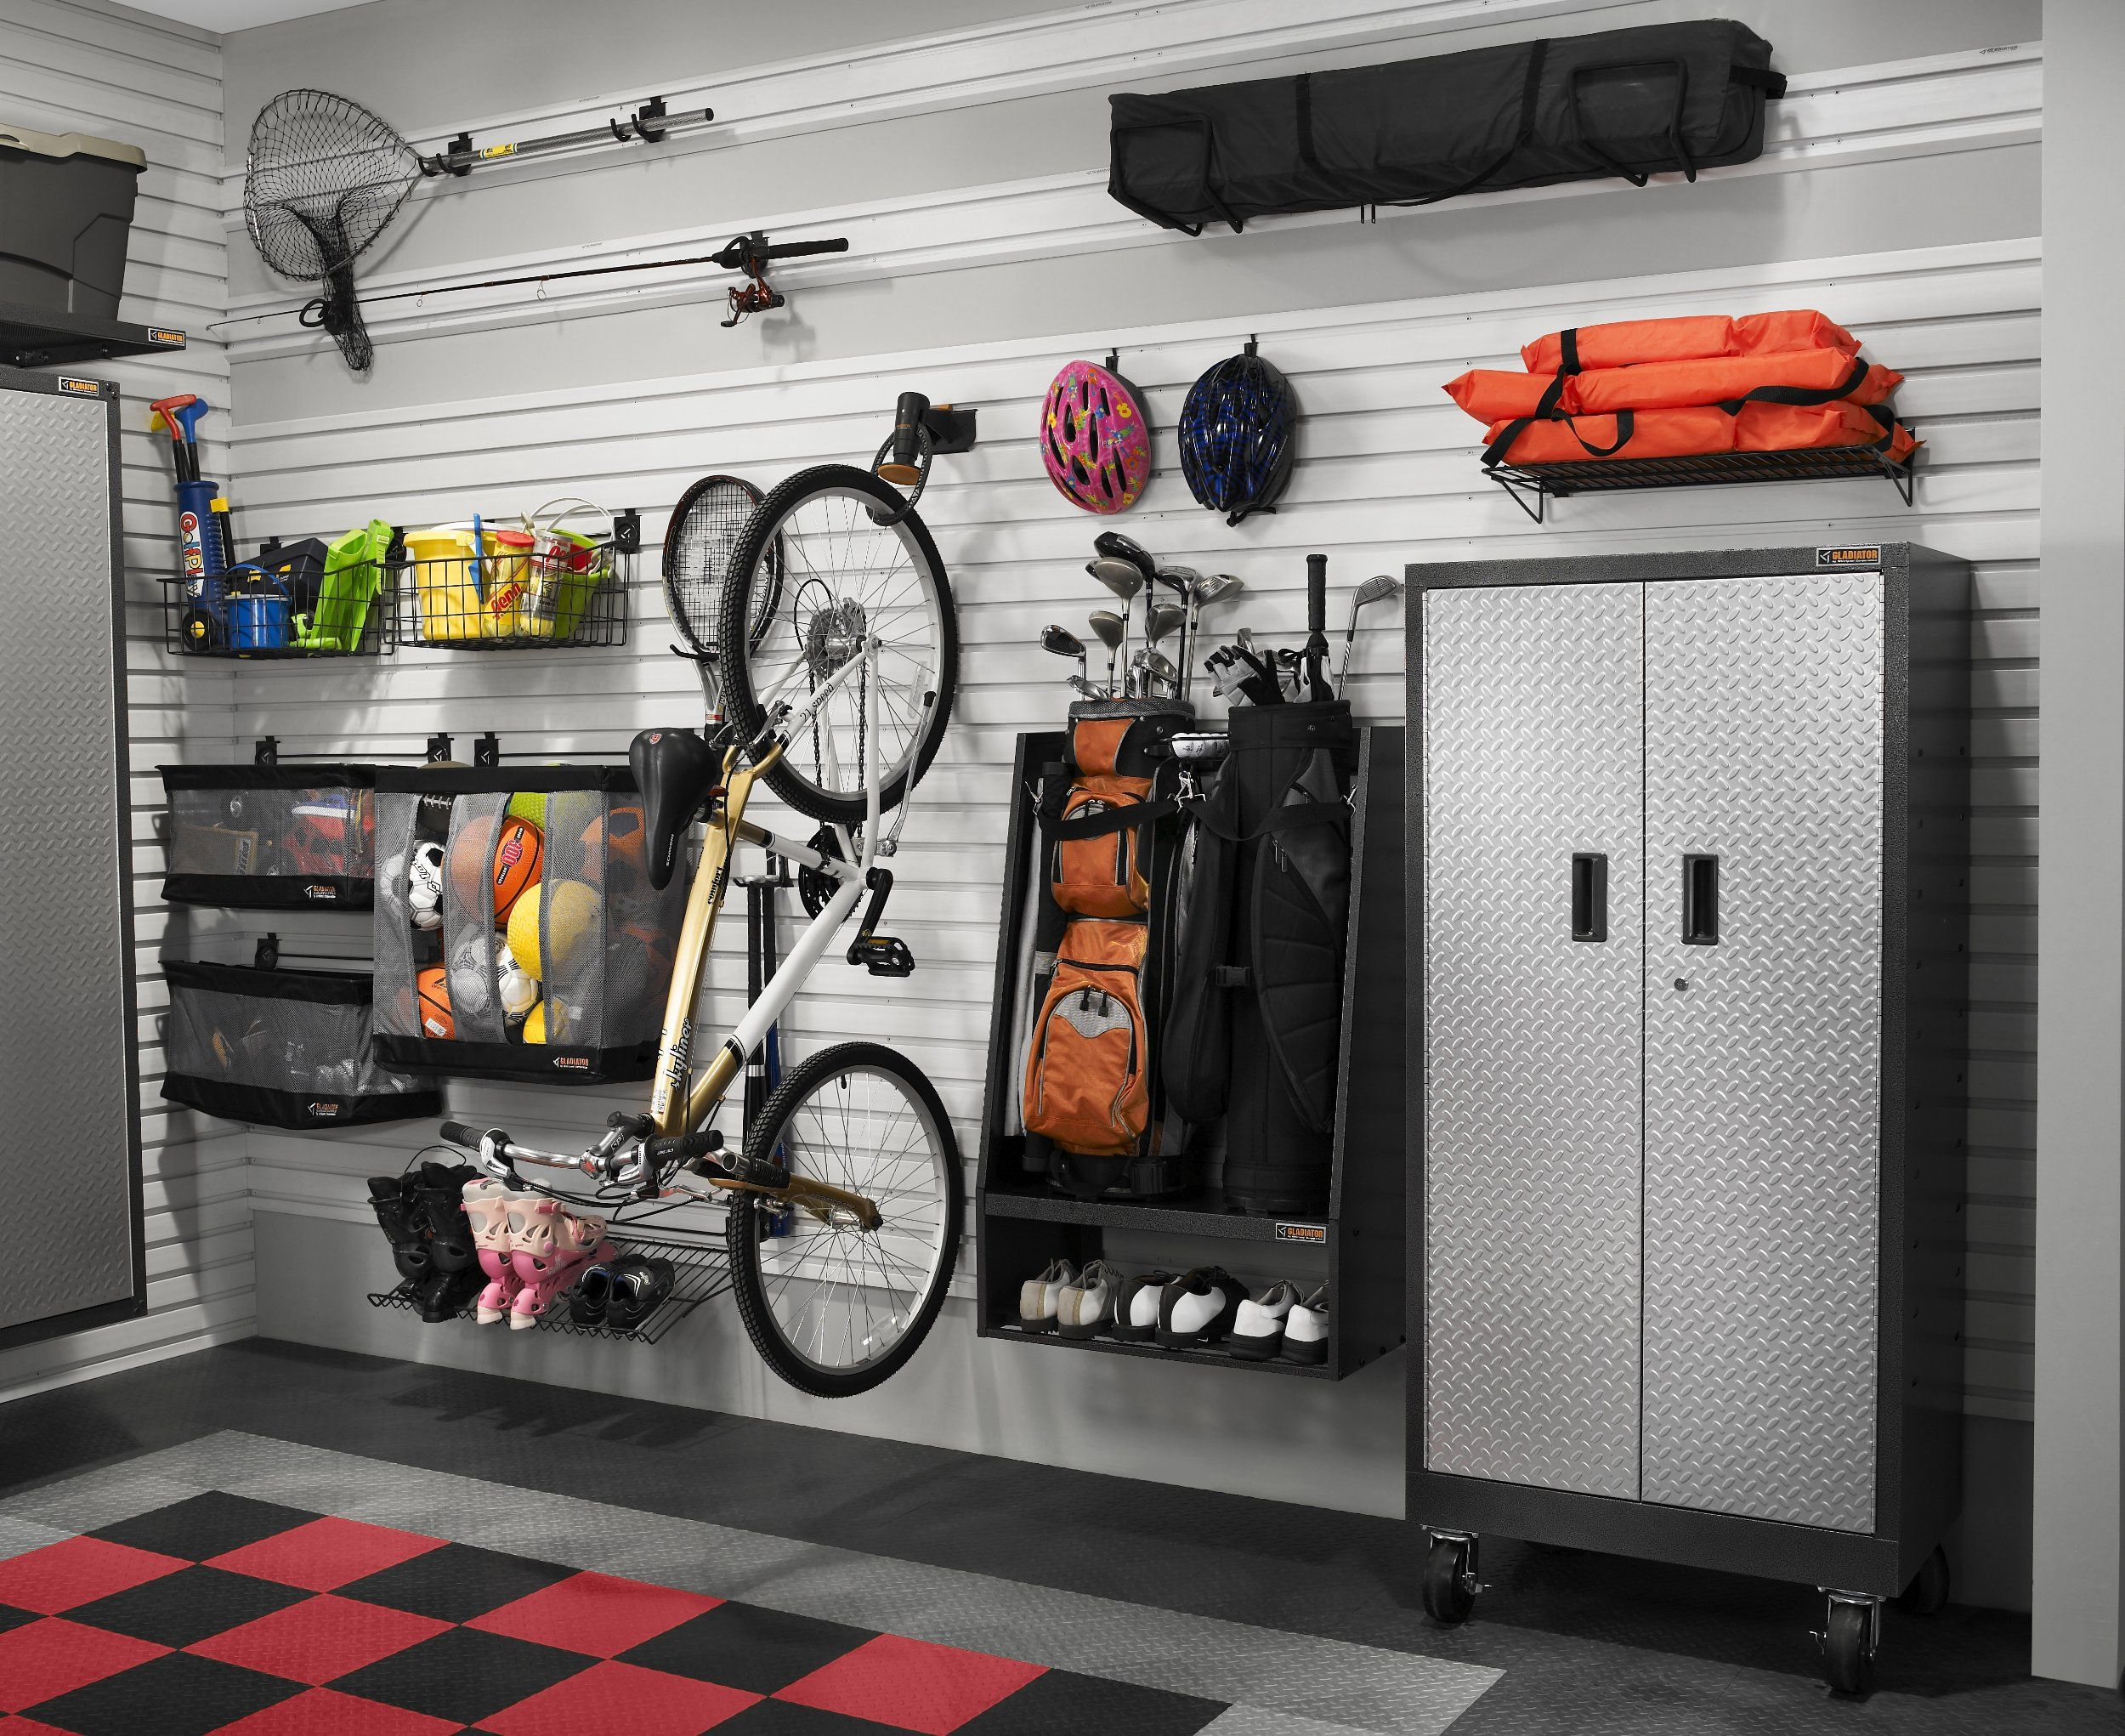 photos beautiful garage storage sears best decor fans com kobalt gladiator cabinets of ceiling bathgroundspath